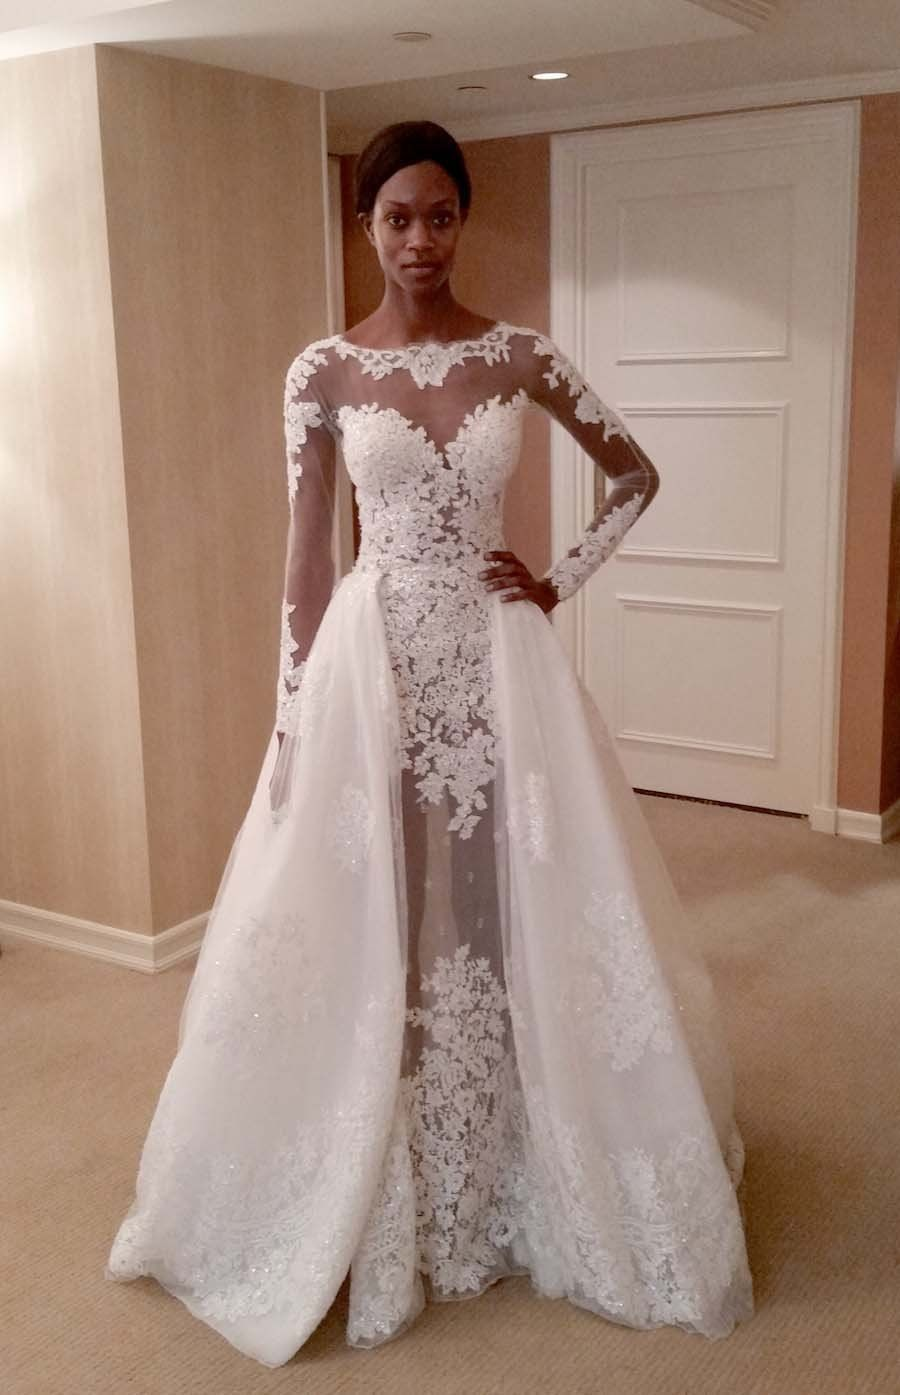 55+ Rental Wedding Dress - Dress for Country Wedding Guest Check ...